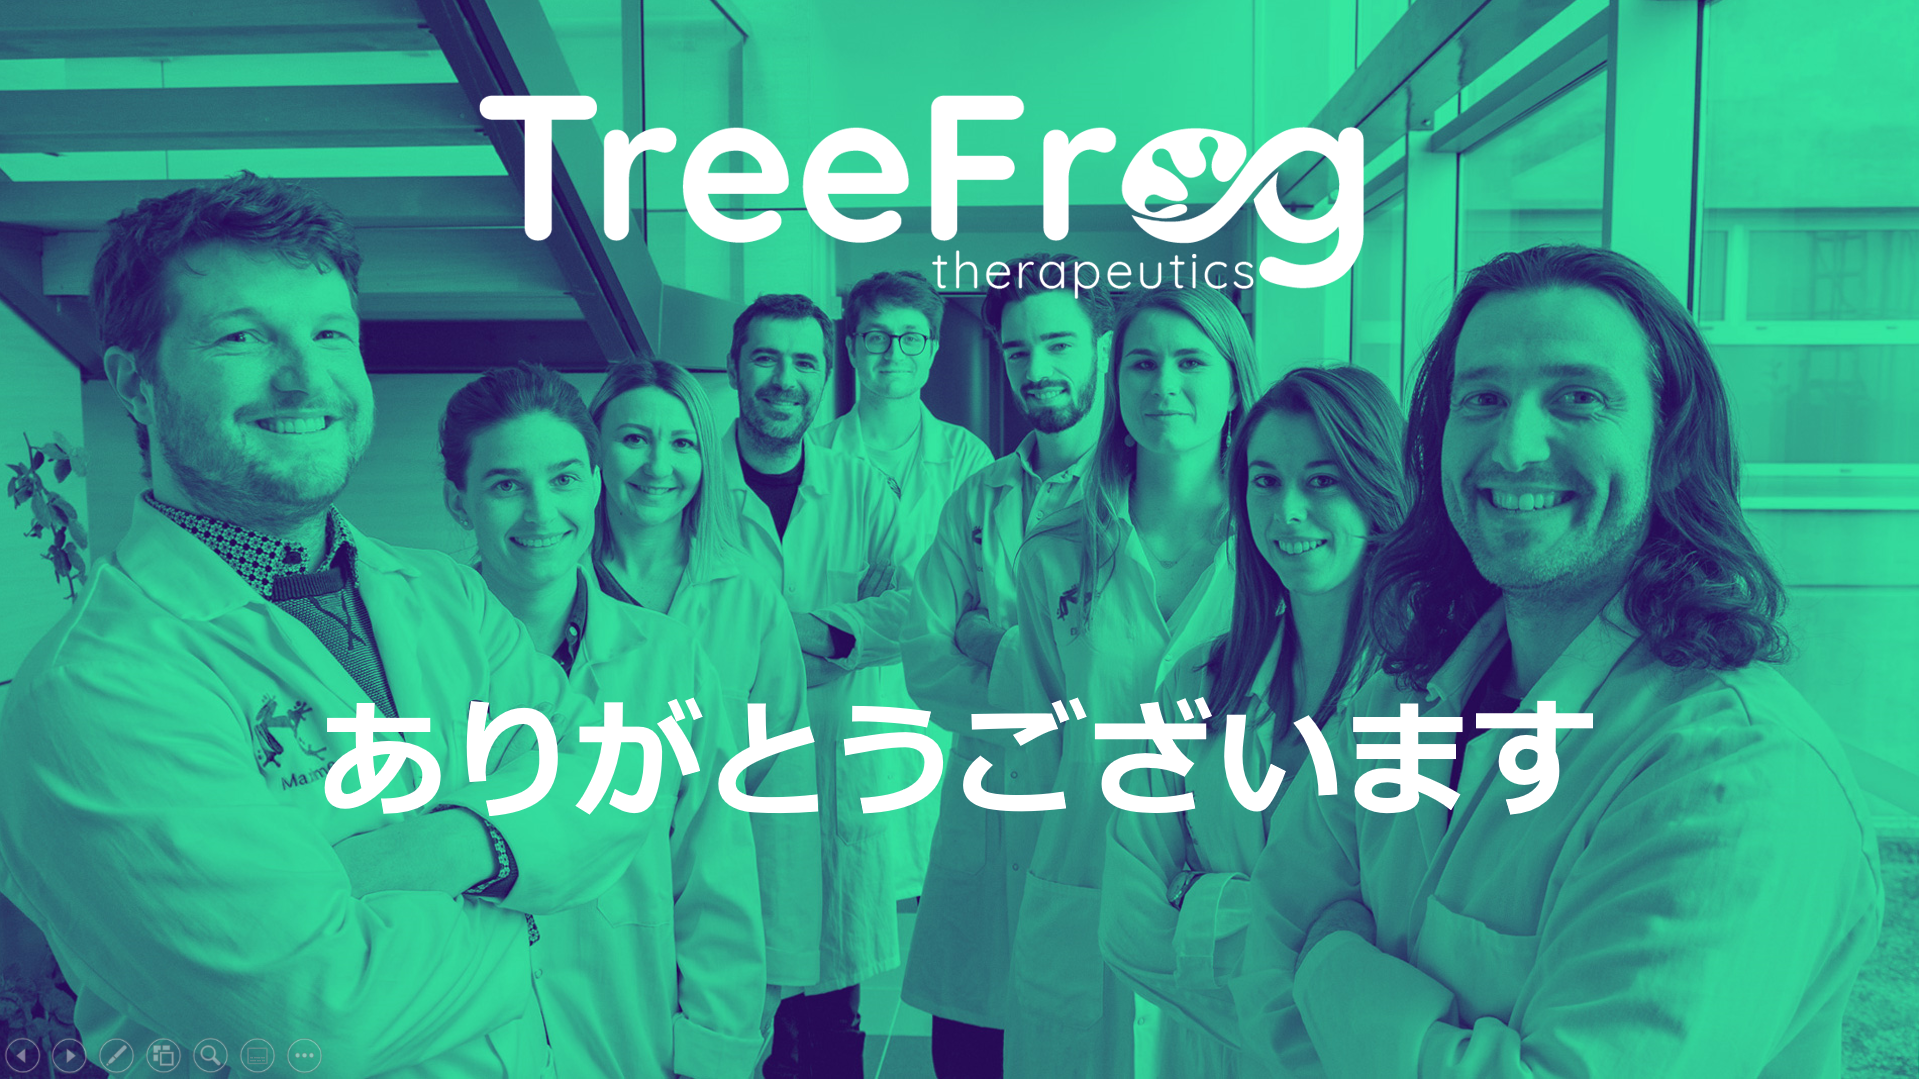 treefrog therapeutics japanese